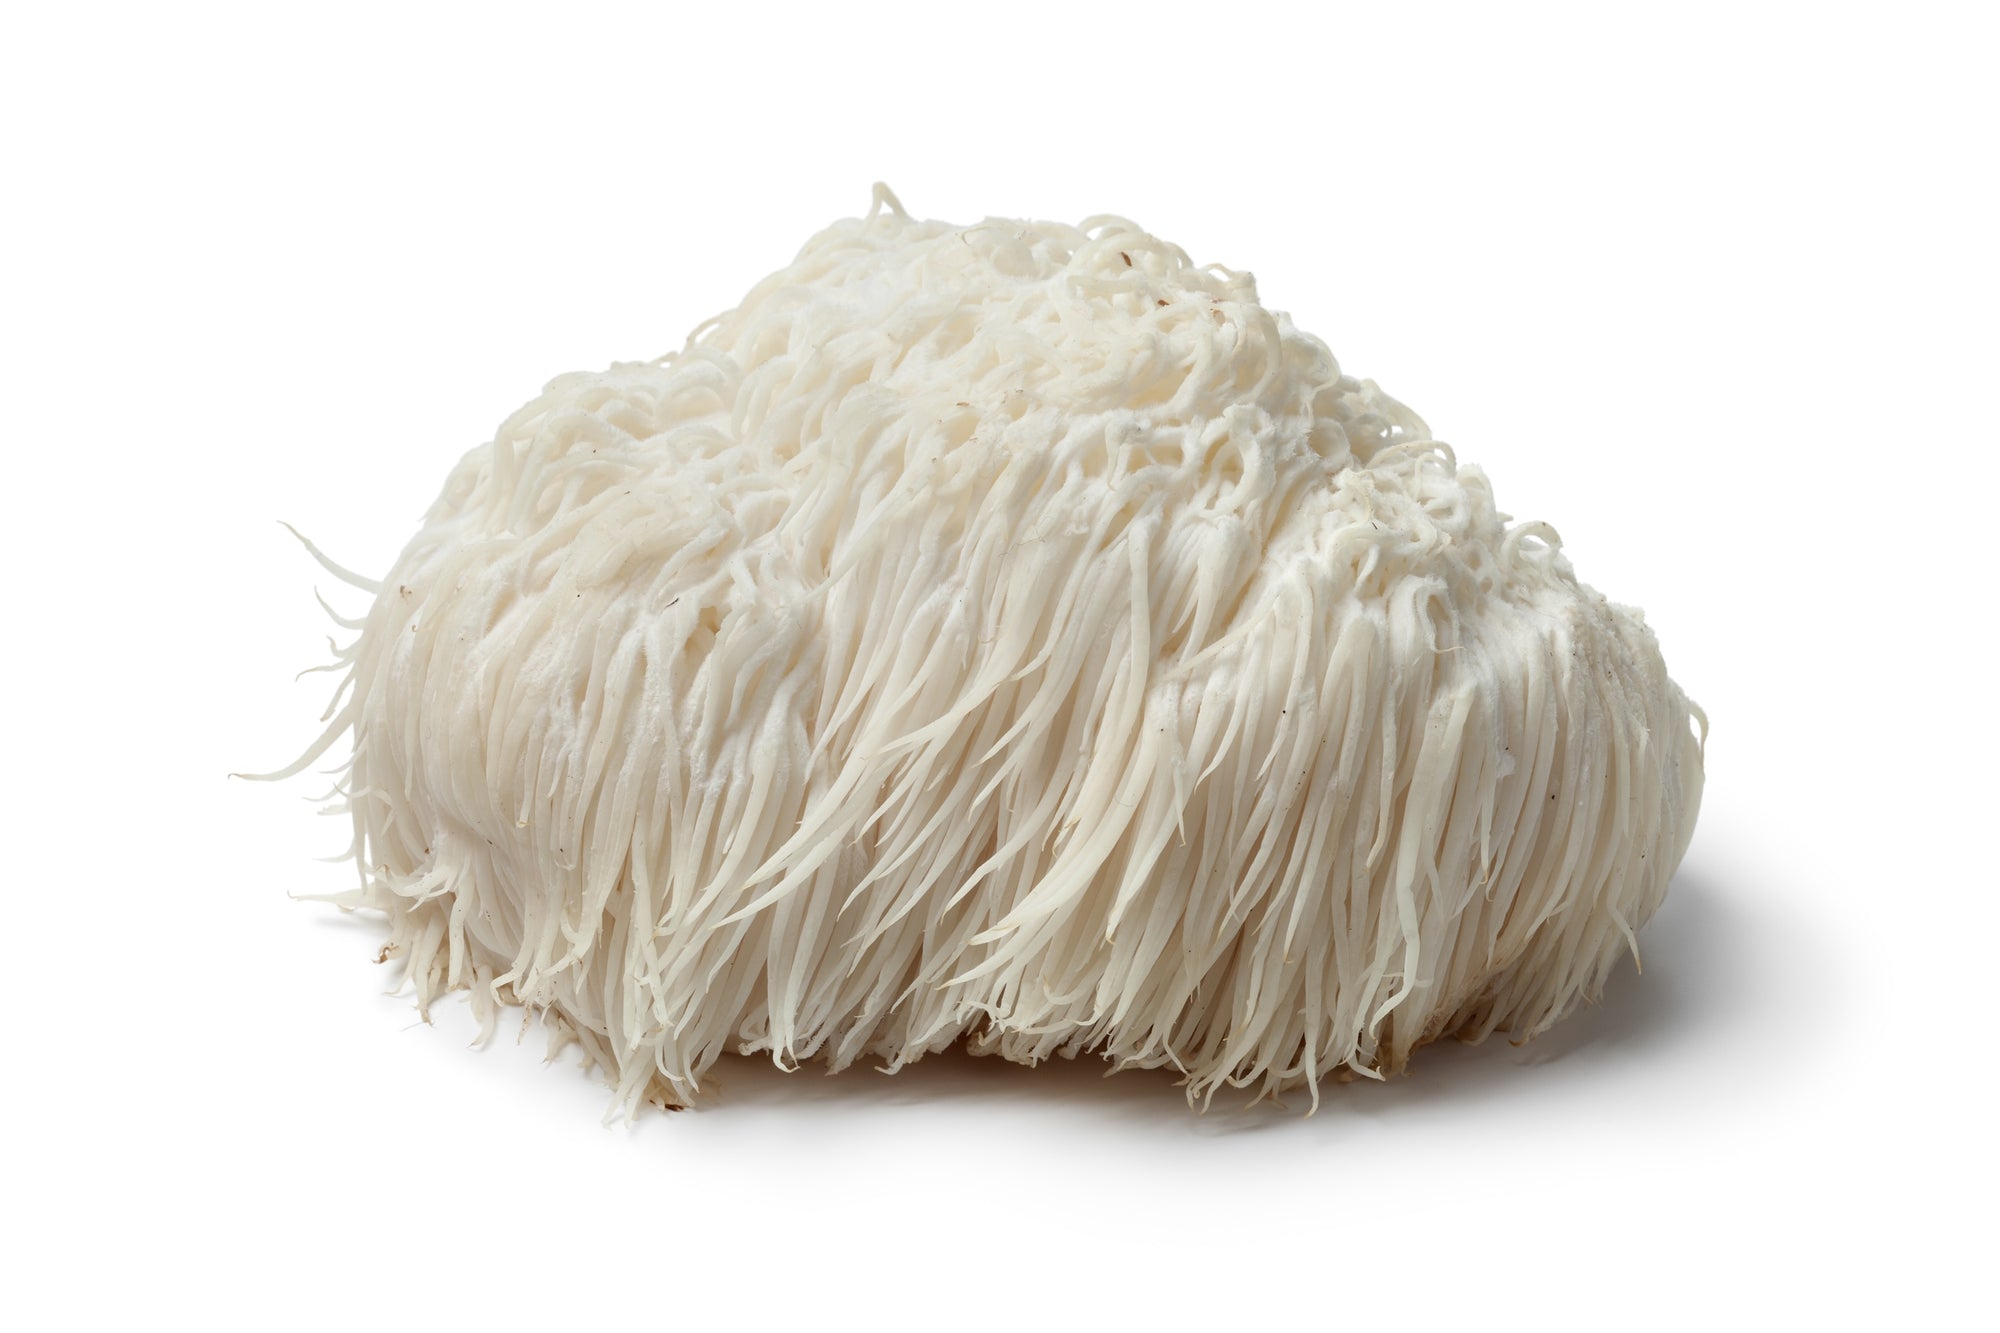 Lion's Mane Mushroom on a white background